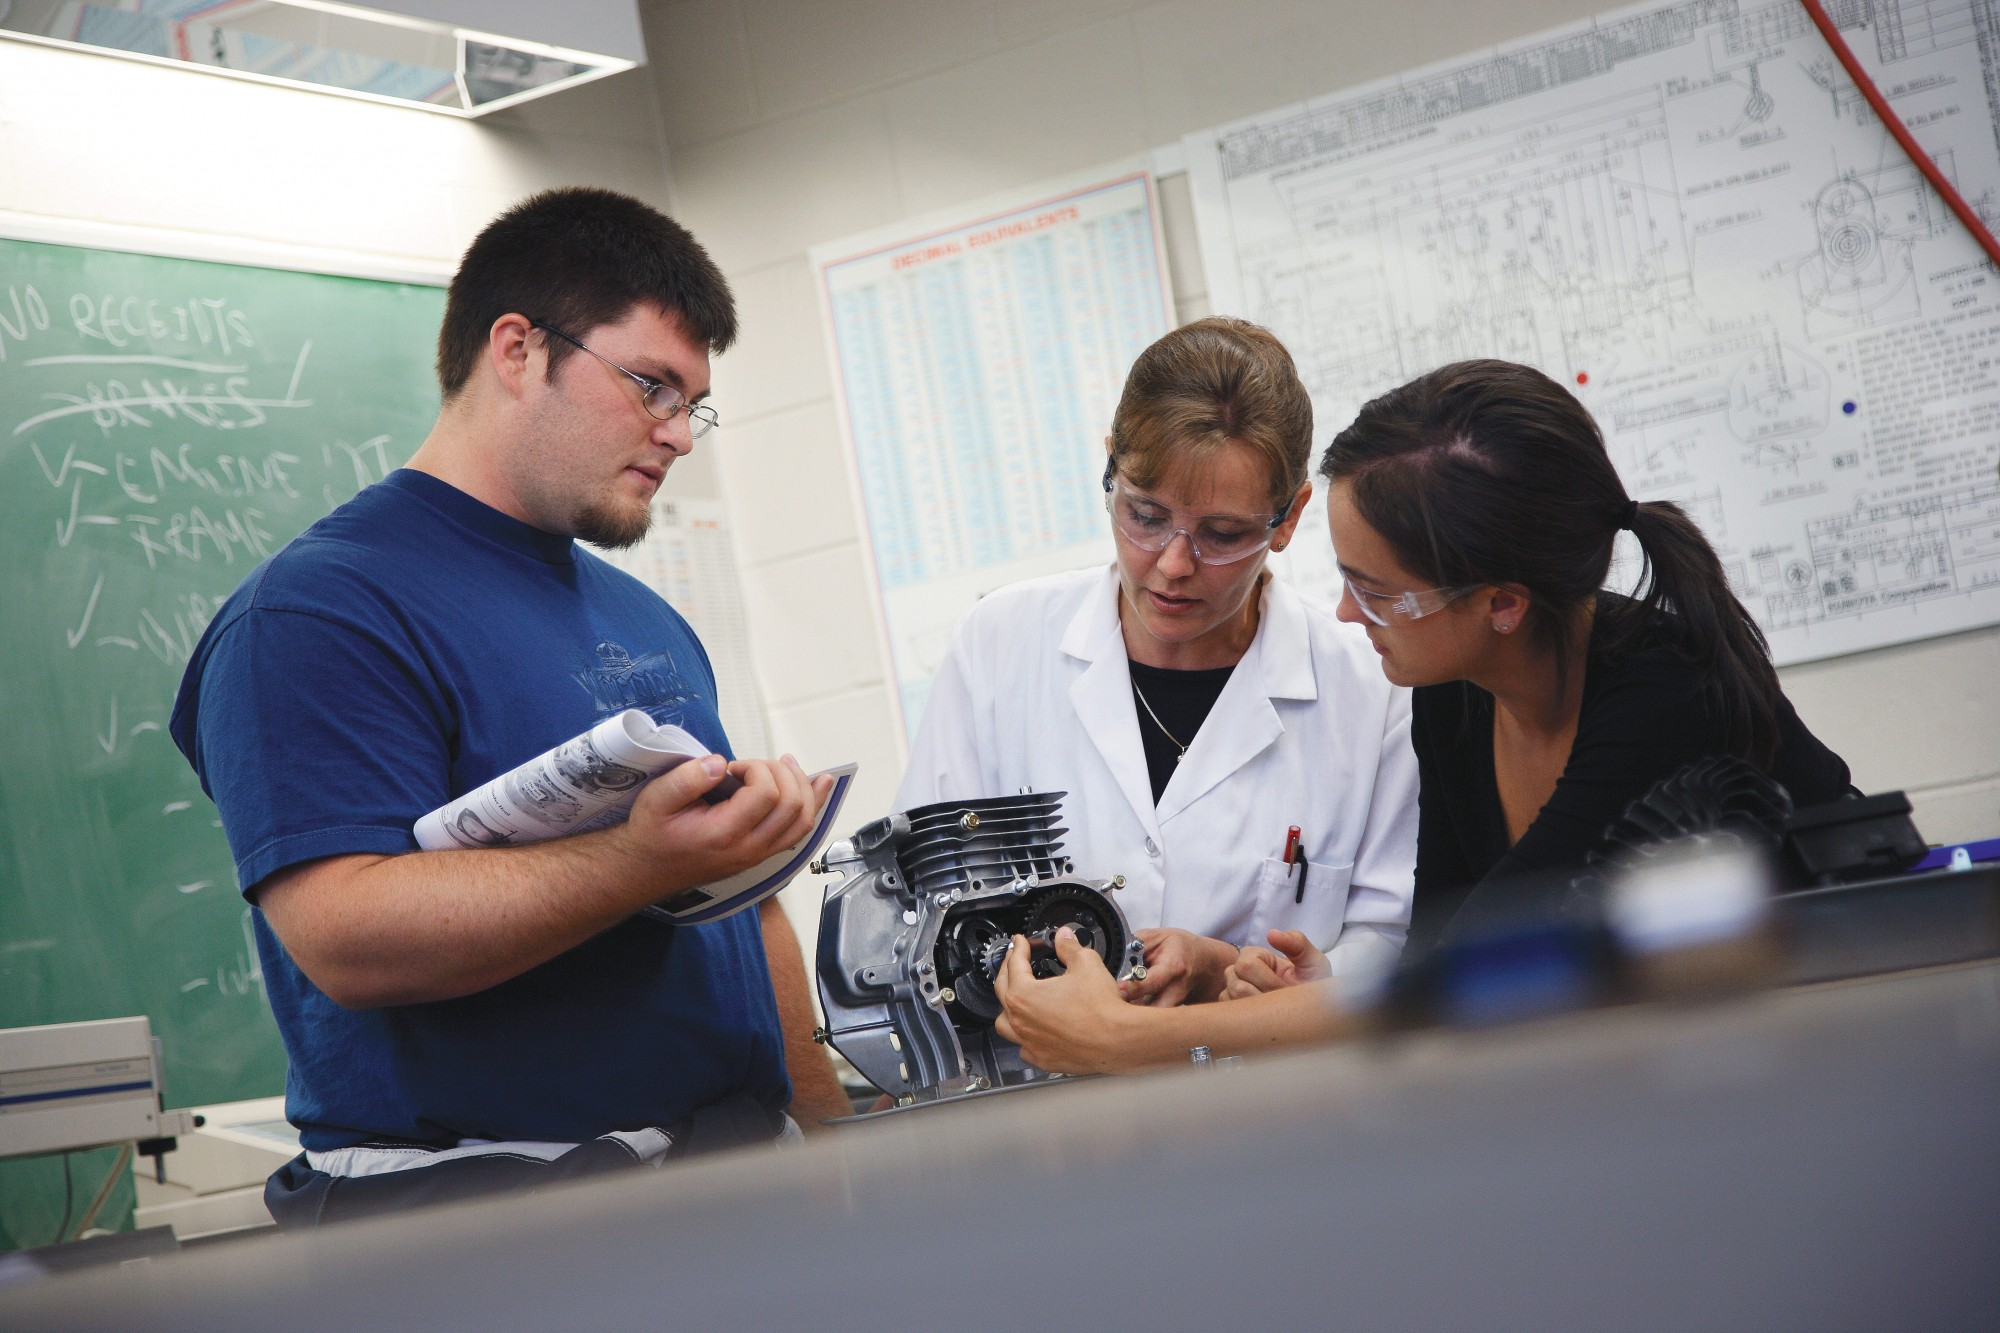 Students and professor in Automotive program